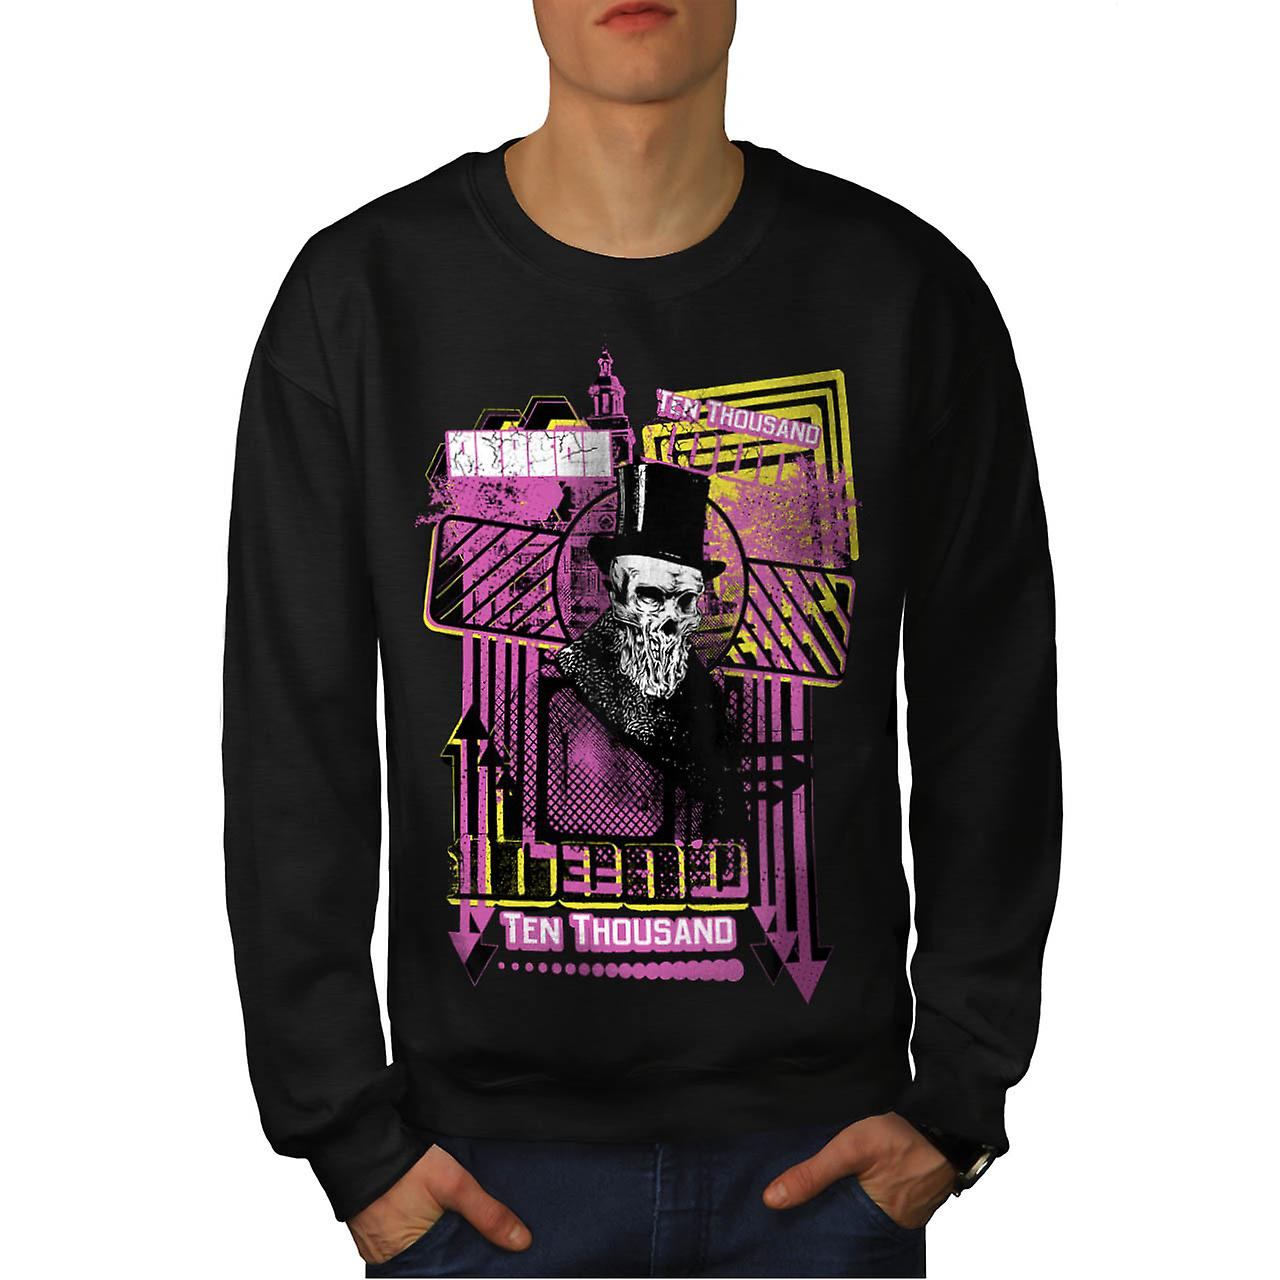 Reason For Death Gent Haunted Men Black Sweatshirt | Wellcoda